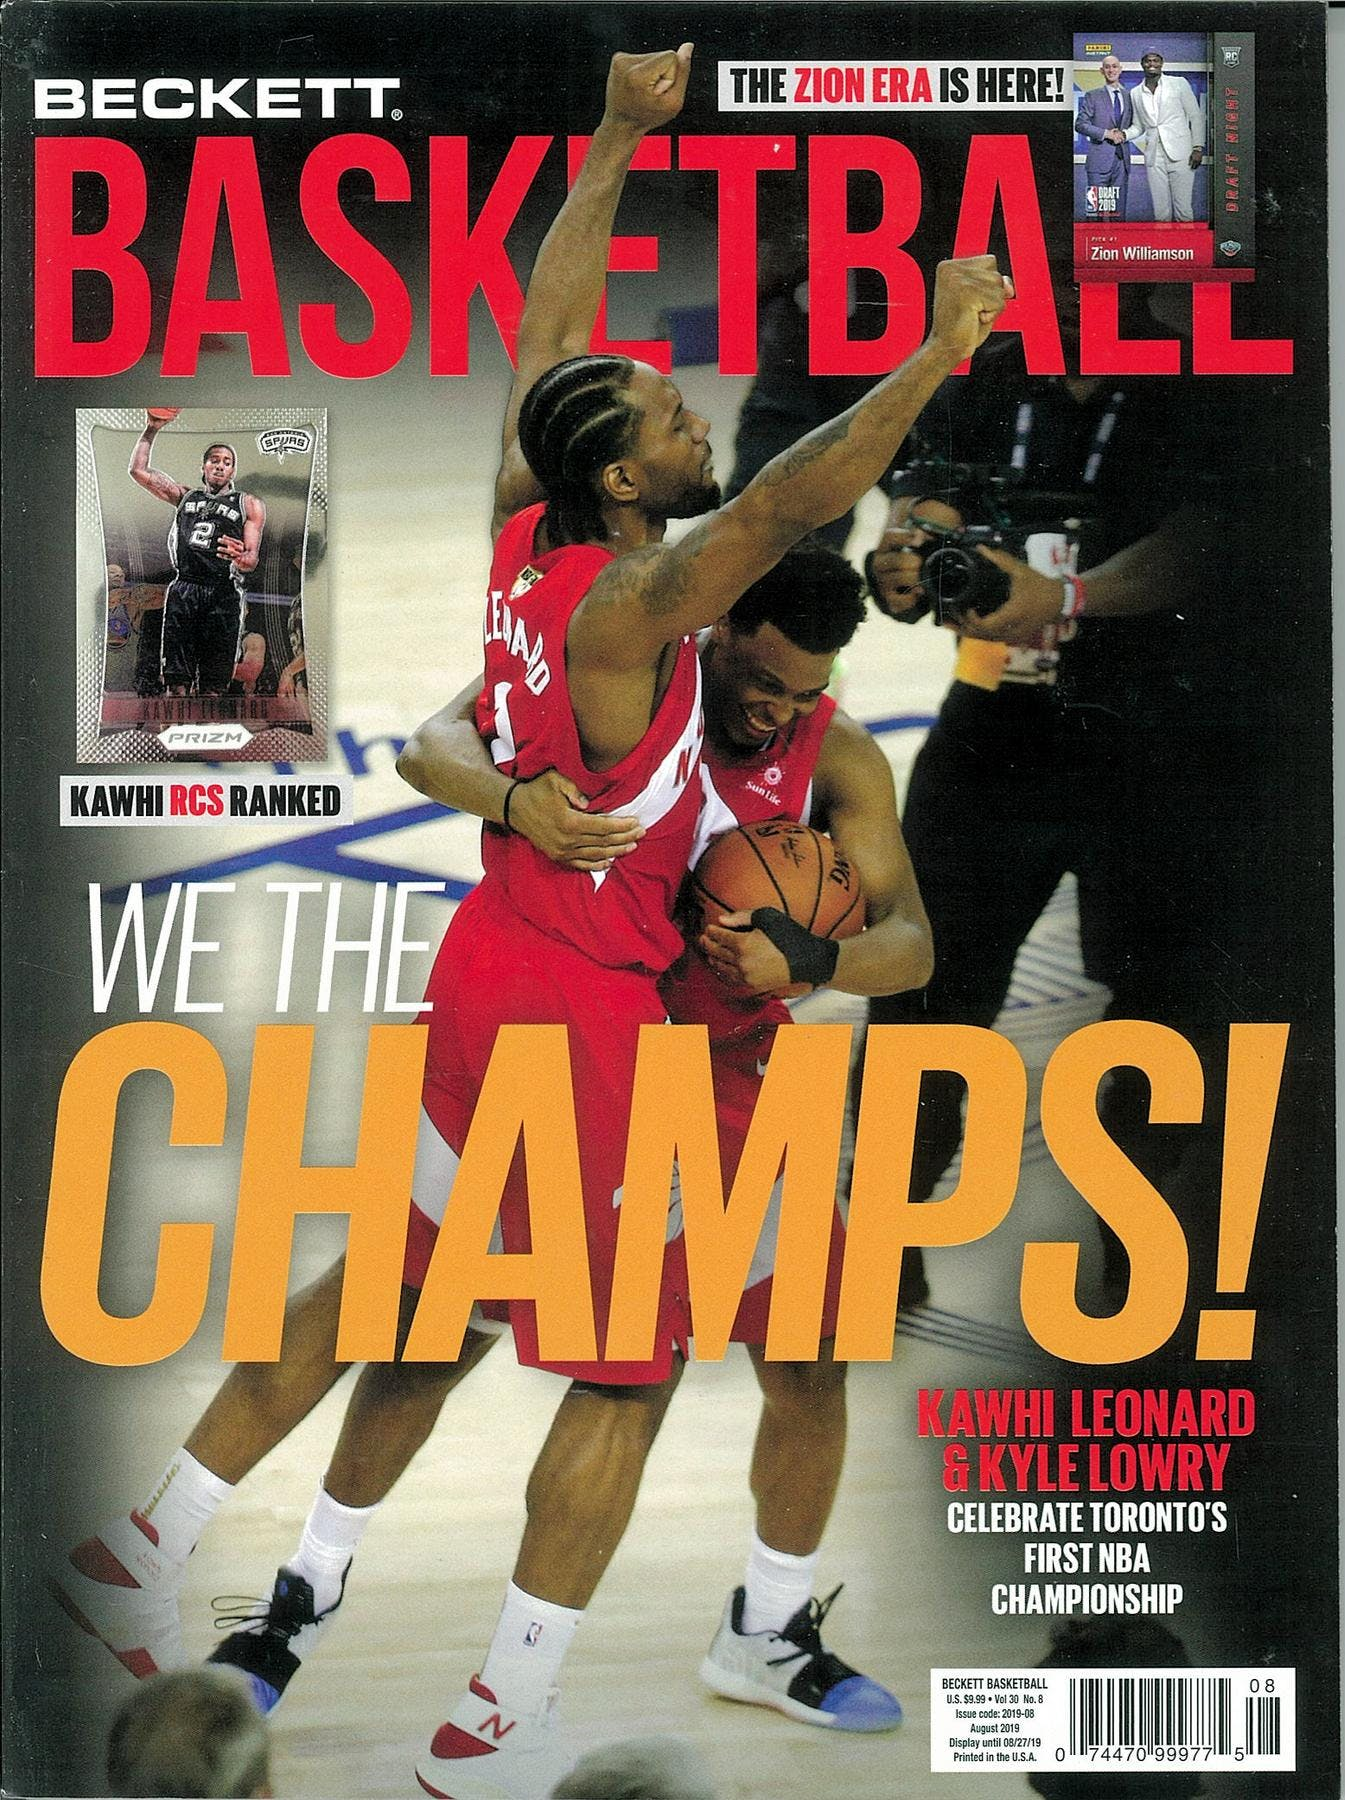 2019 Beckett Basketball Monthly Price Guide (#323 August) (We the CHAMPS)